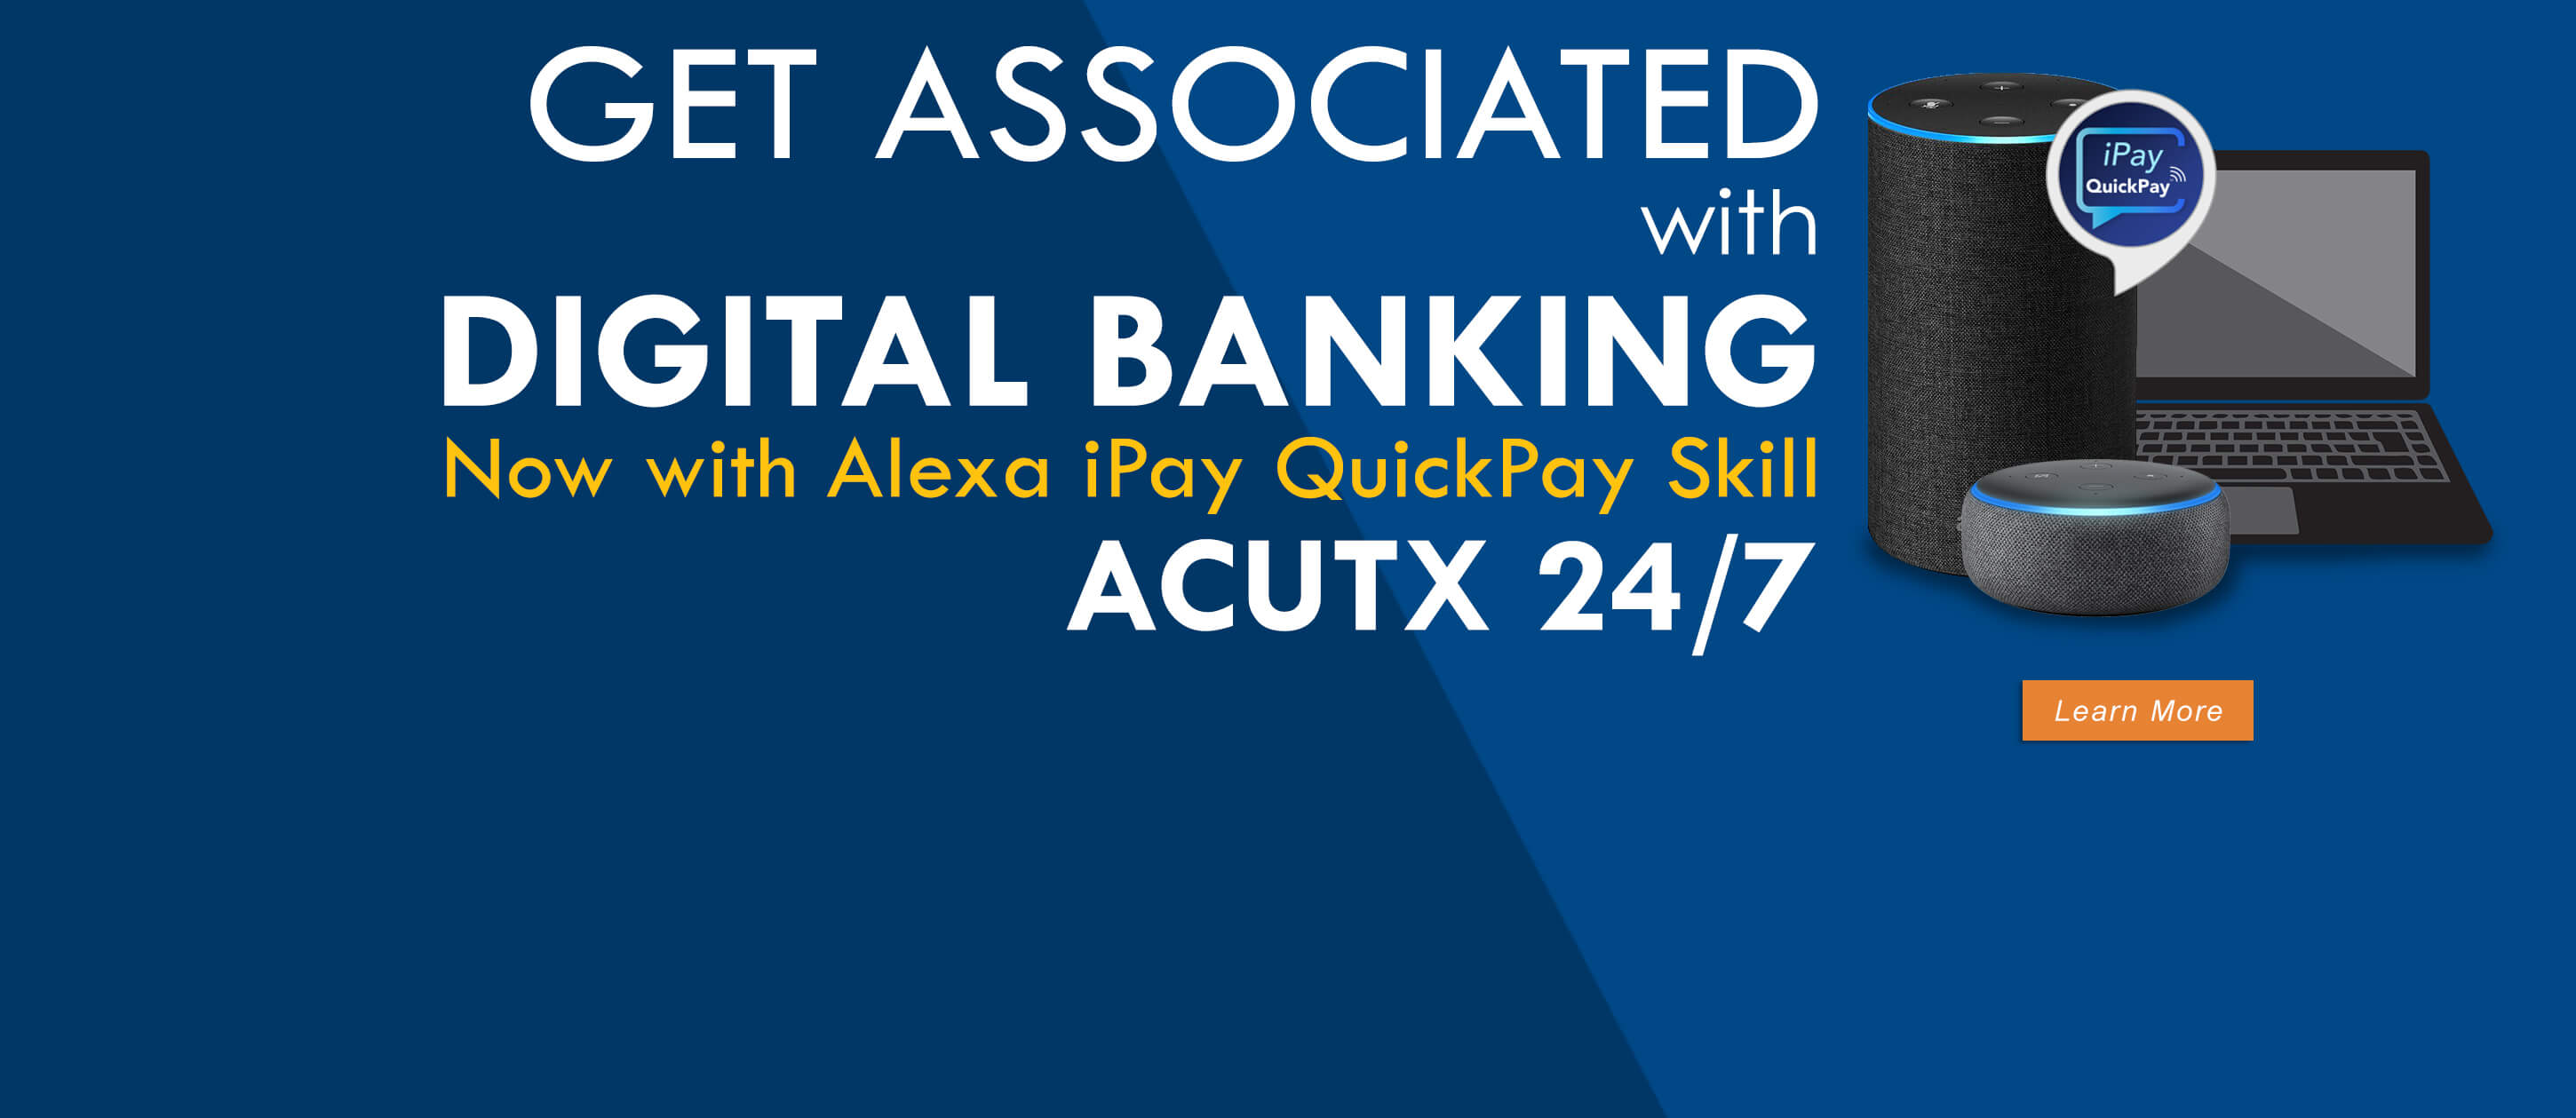 Get Associated with Digital Banking. Now with Alexa iPay QuickPay Skill. ACUTX 24/7. Learn More.